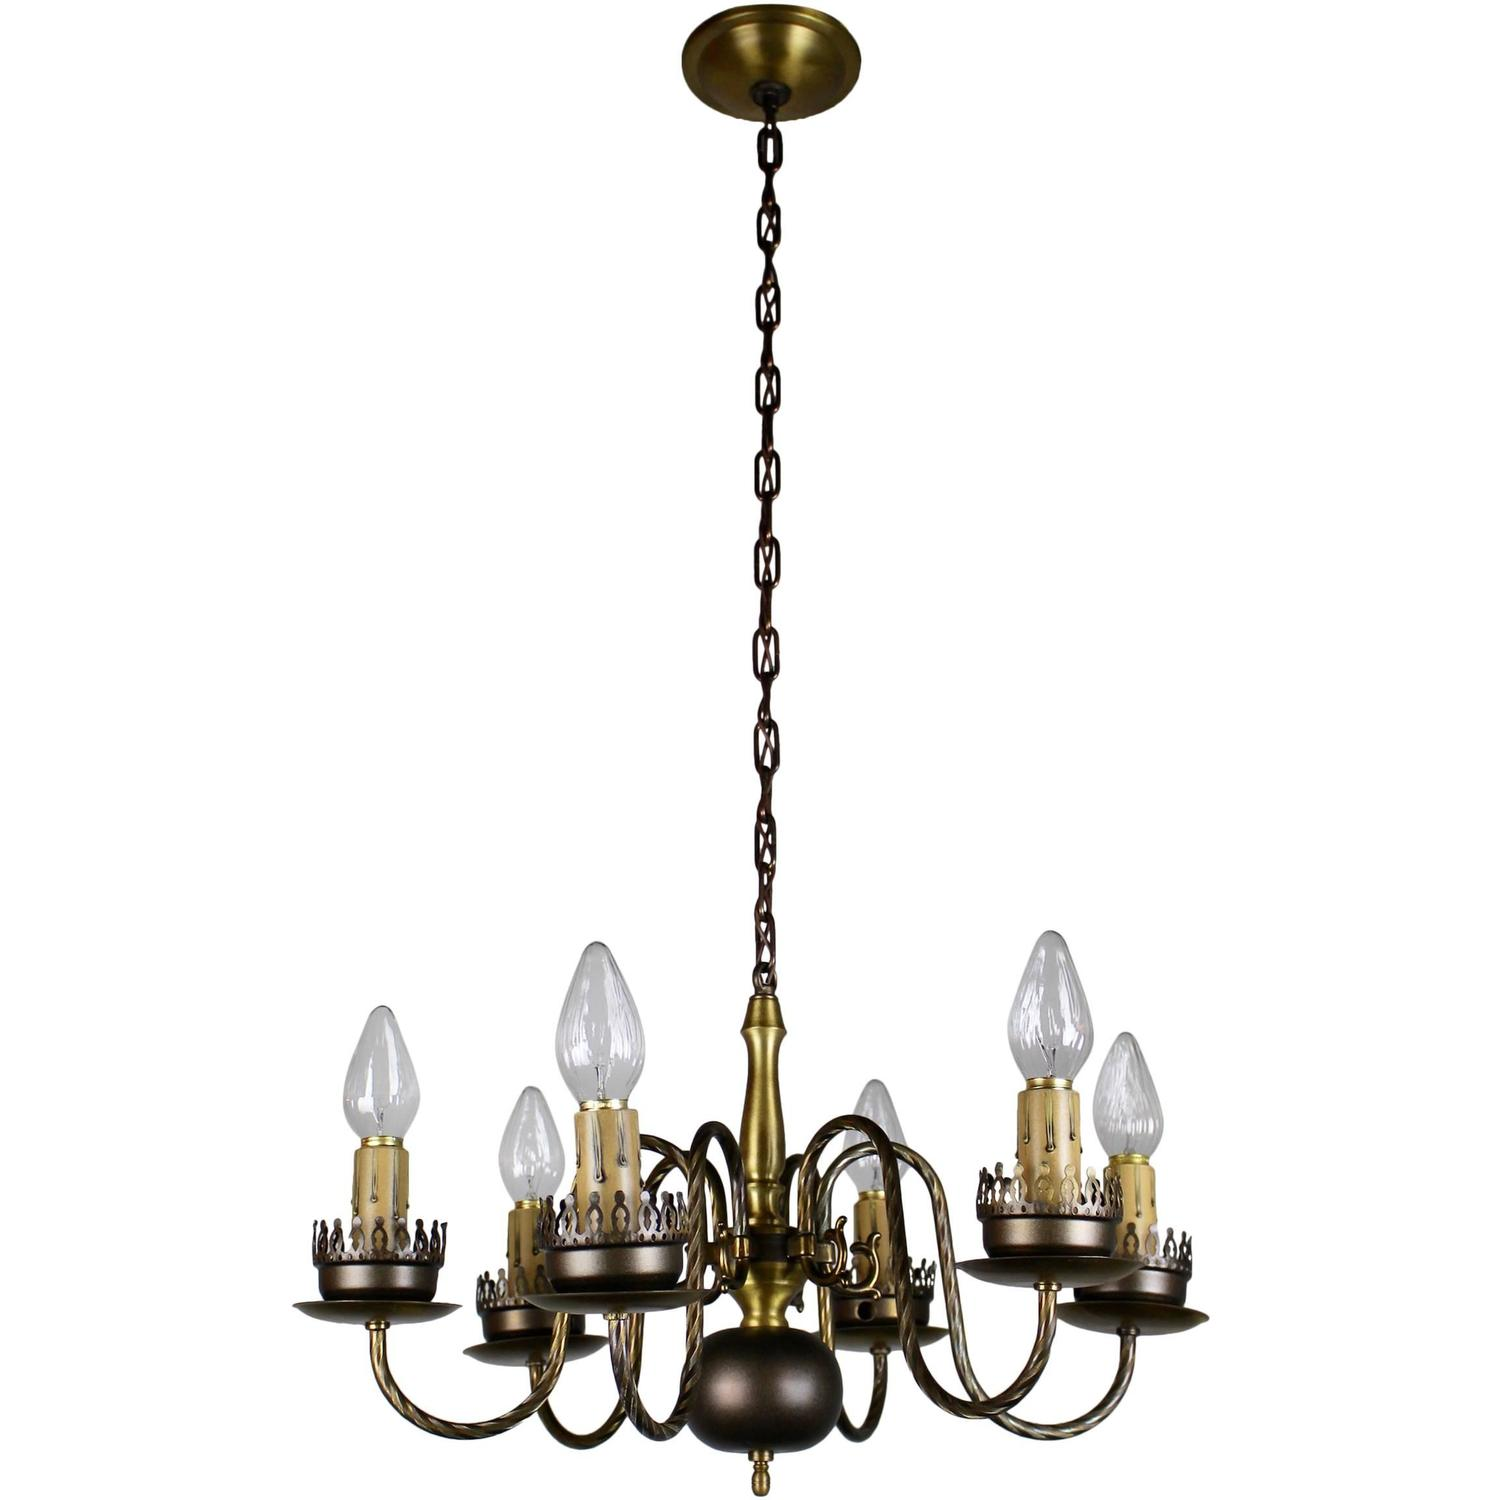 Chandelier Lighting Vancouver Bc: Six-Arm Colonial Revival Candelabra Style Chandelier Two